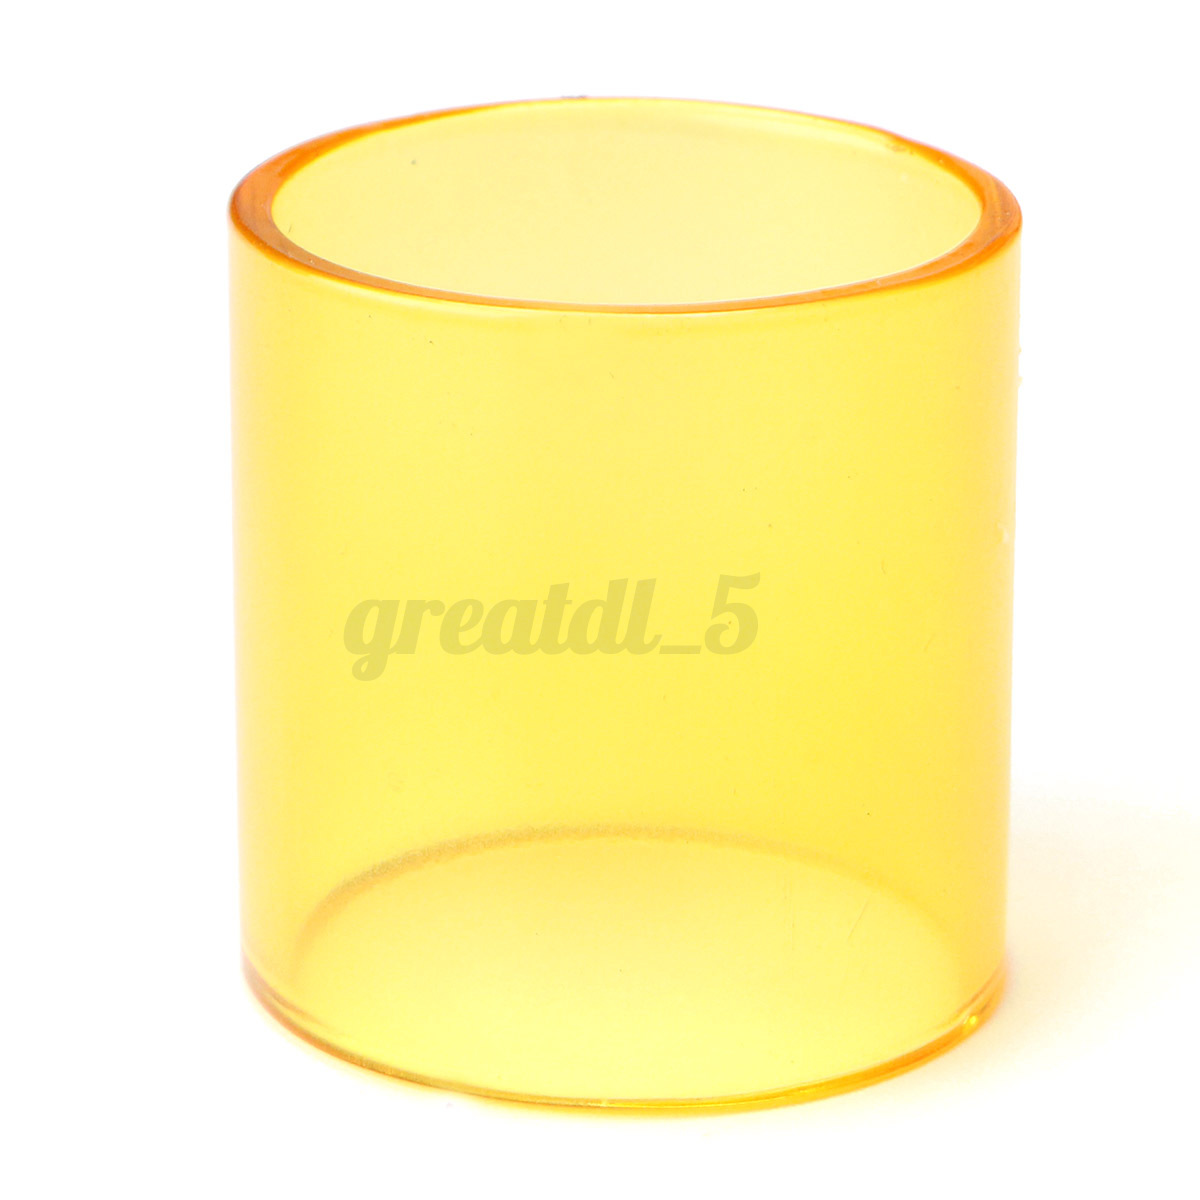 pyrex replacement clear glass - photo #12